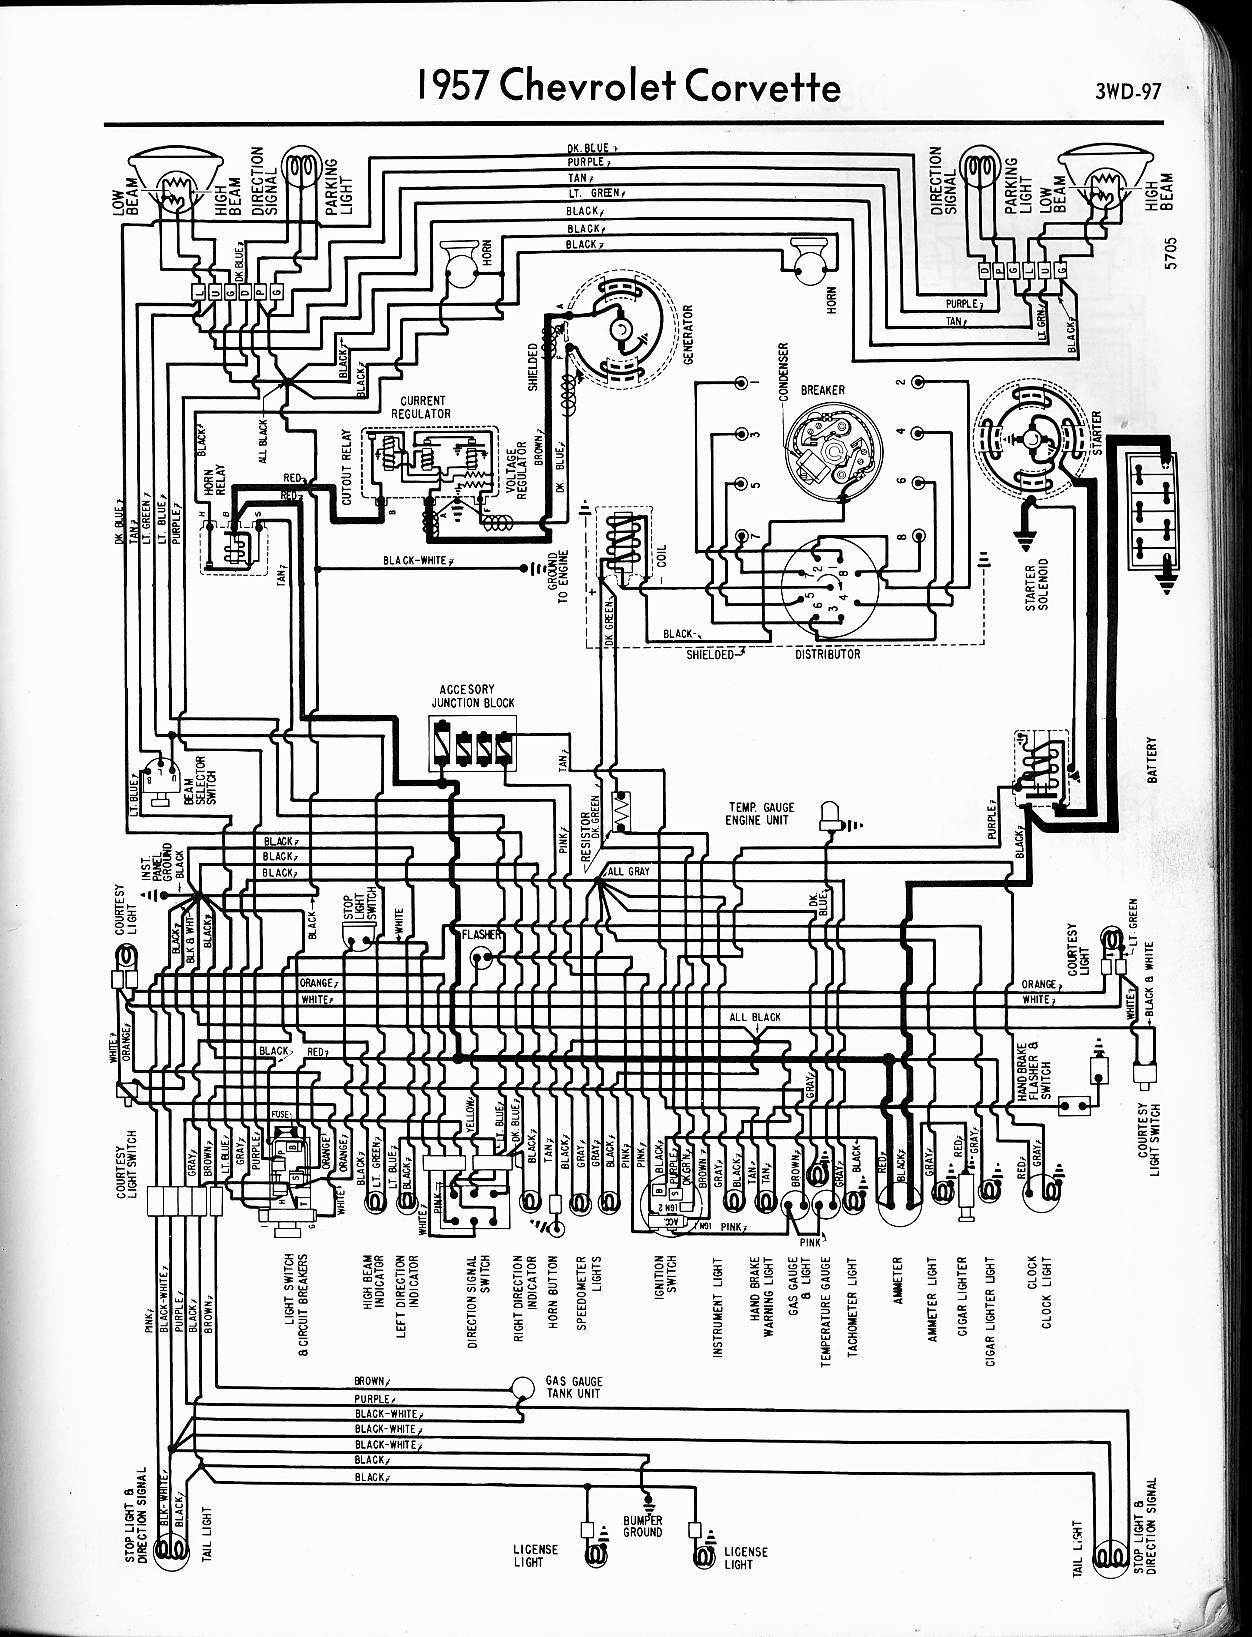 Ih Truck Wiring Harness | Wiring Diagram on